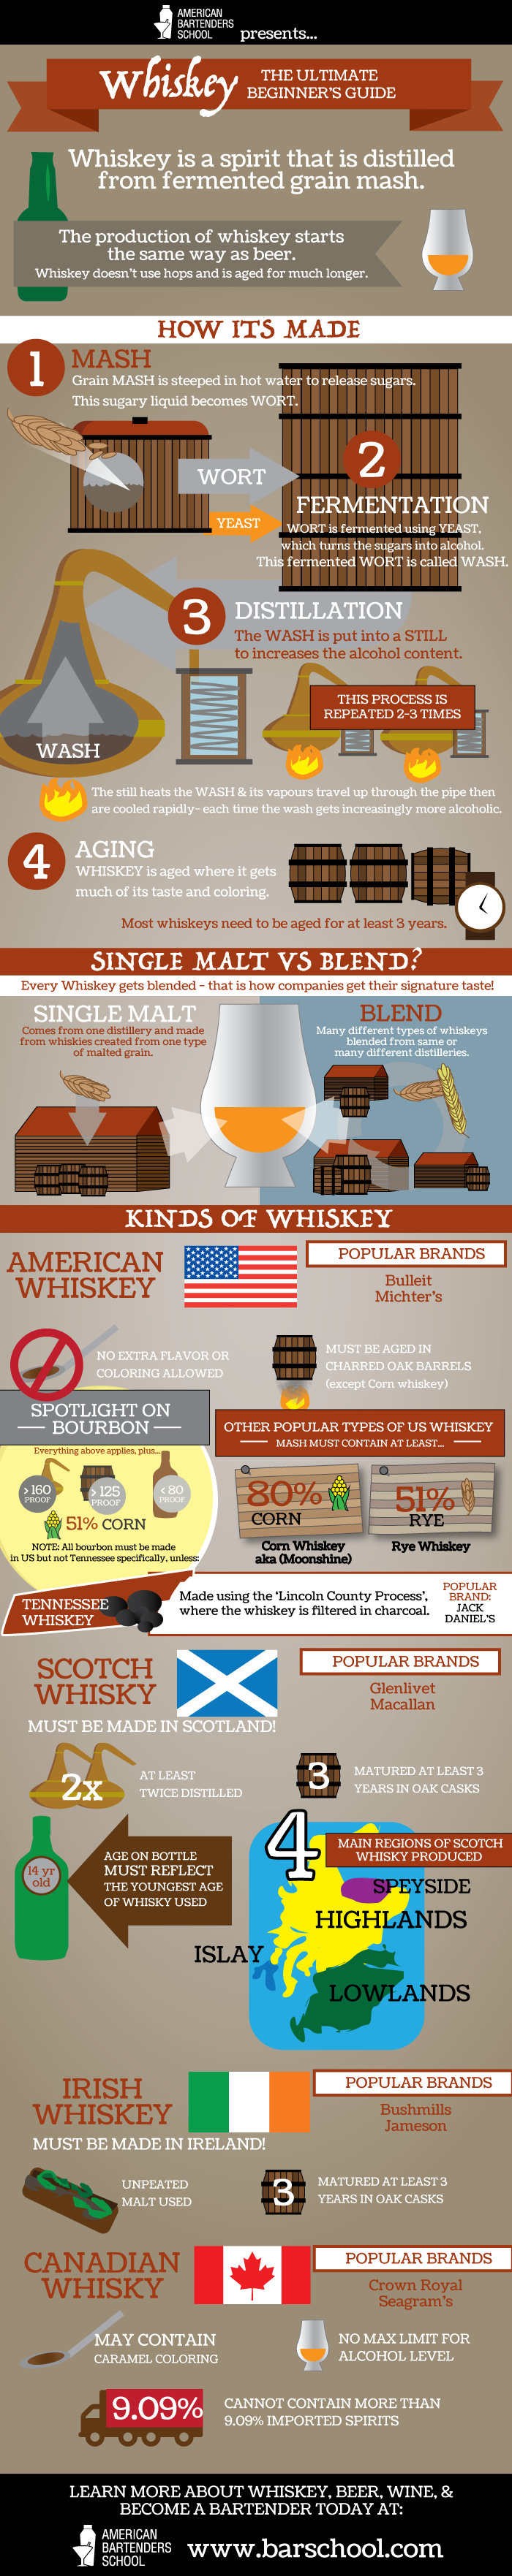 whiskey-guide-new